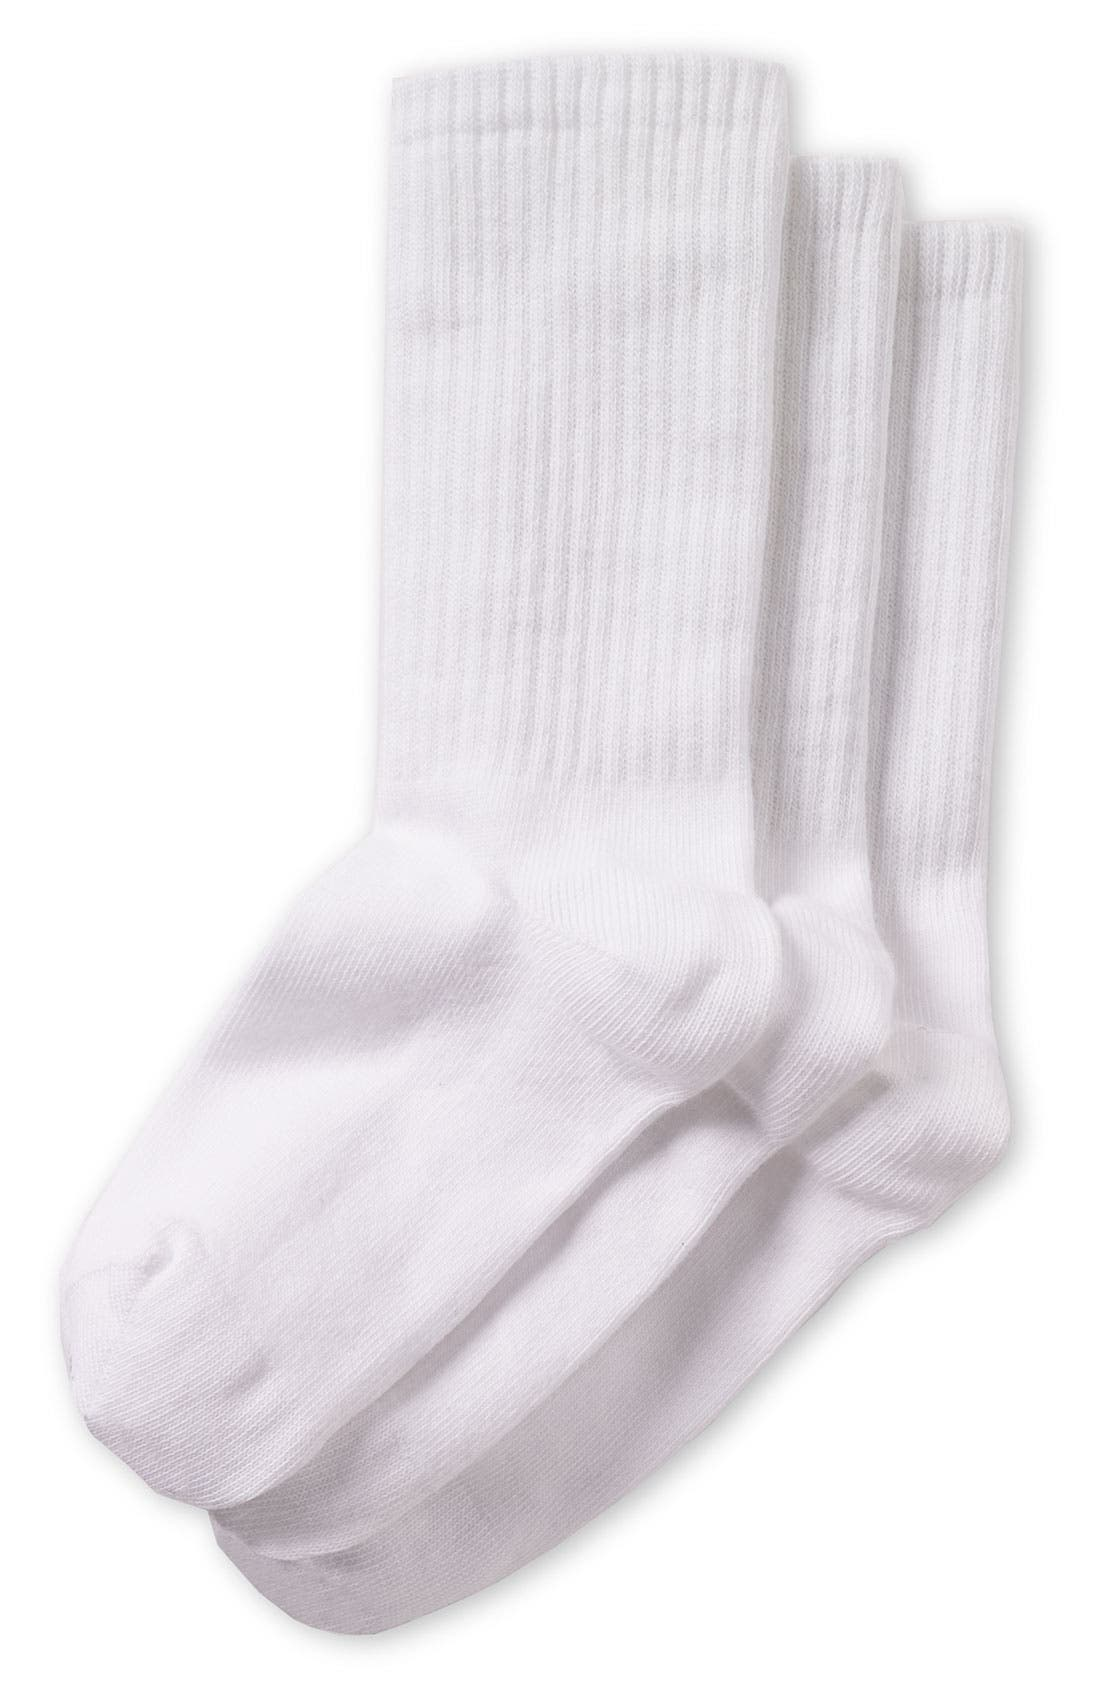 Main Image - Nordstrom Cotton Blend Crew Socks (3-Pack) (Toddler, Little Boys & Big Boys)